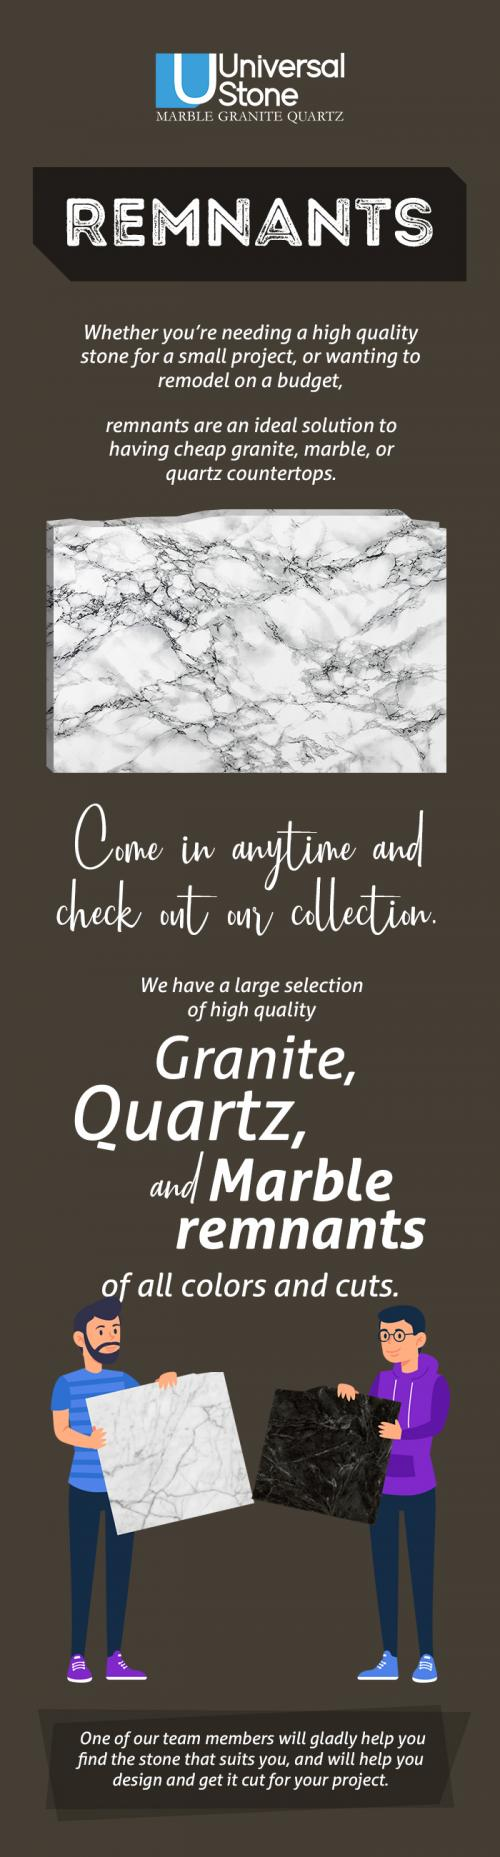 Shop from the Rich Collection of Remnants at Universal Stone